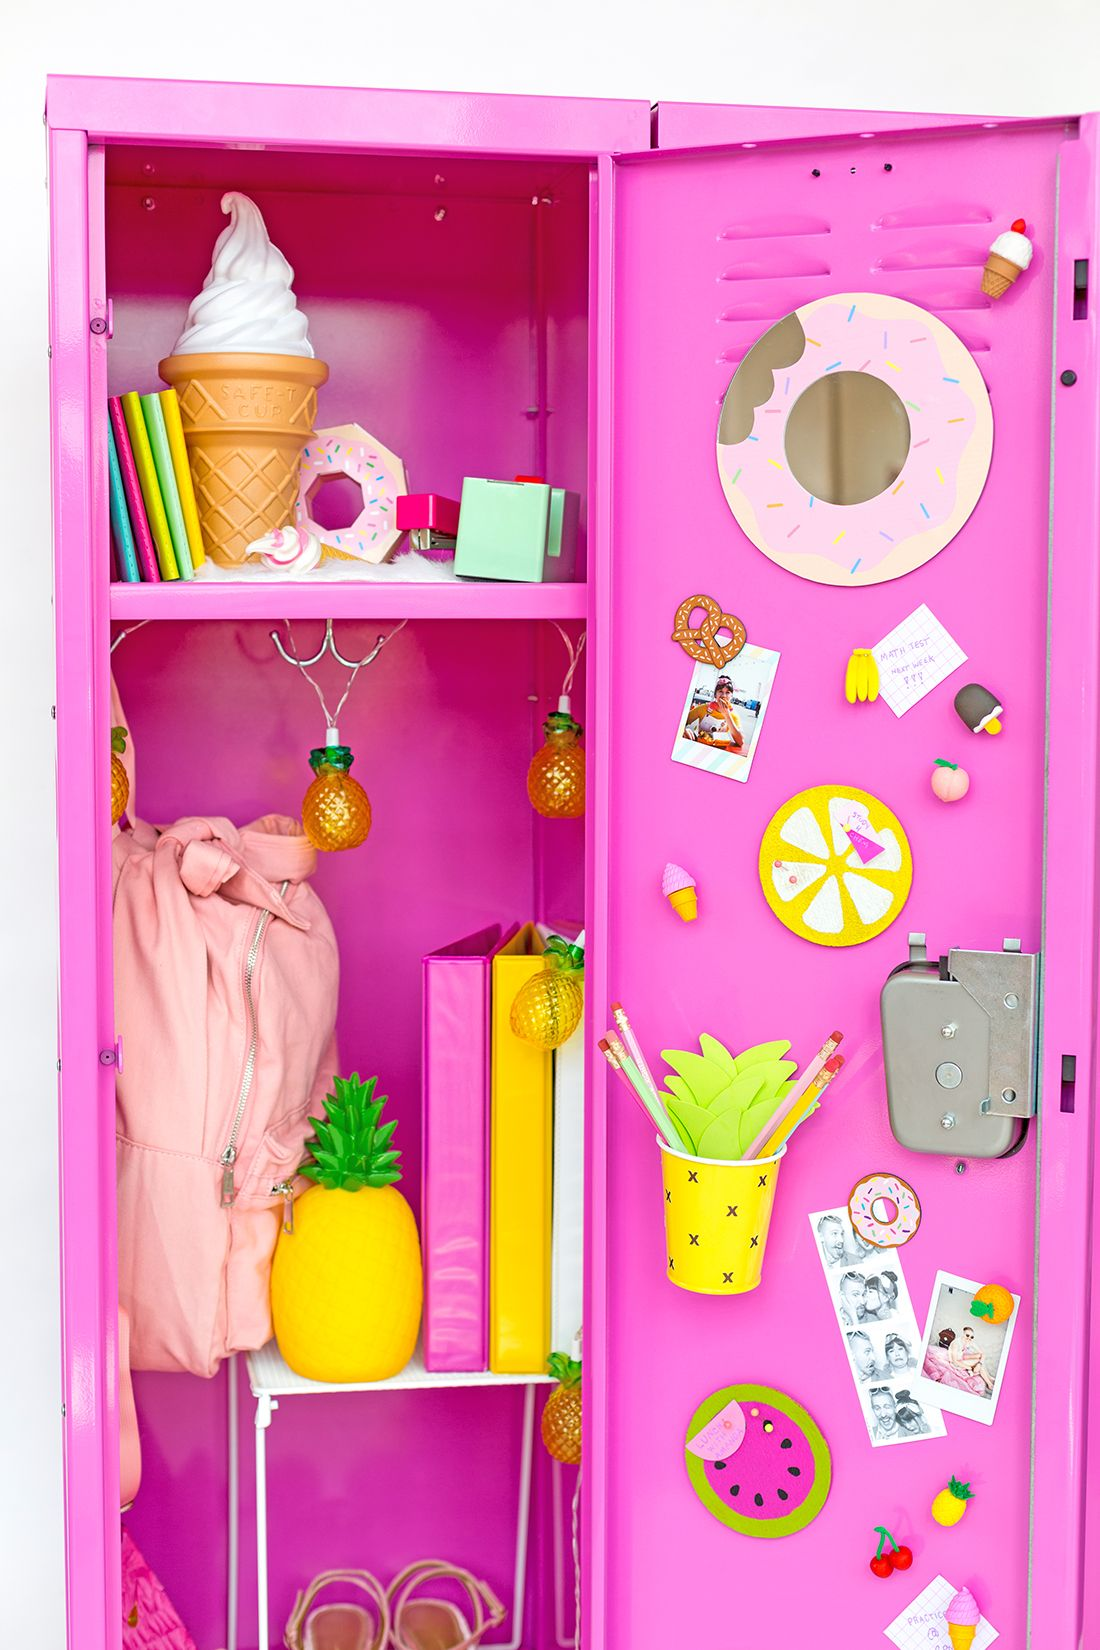 Colorful Diy Locker Decoration Ideas School Locker Decorations Locker Decorations Diy Cute Locker Decorations